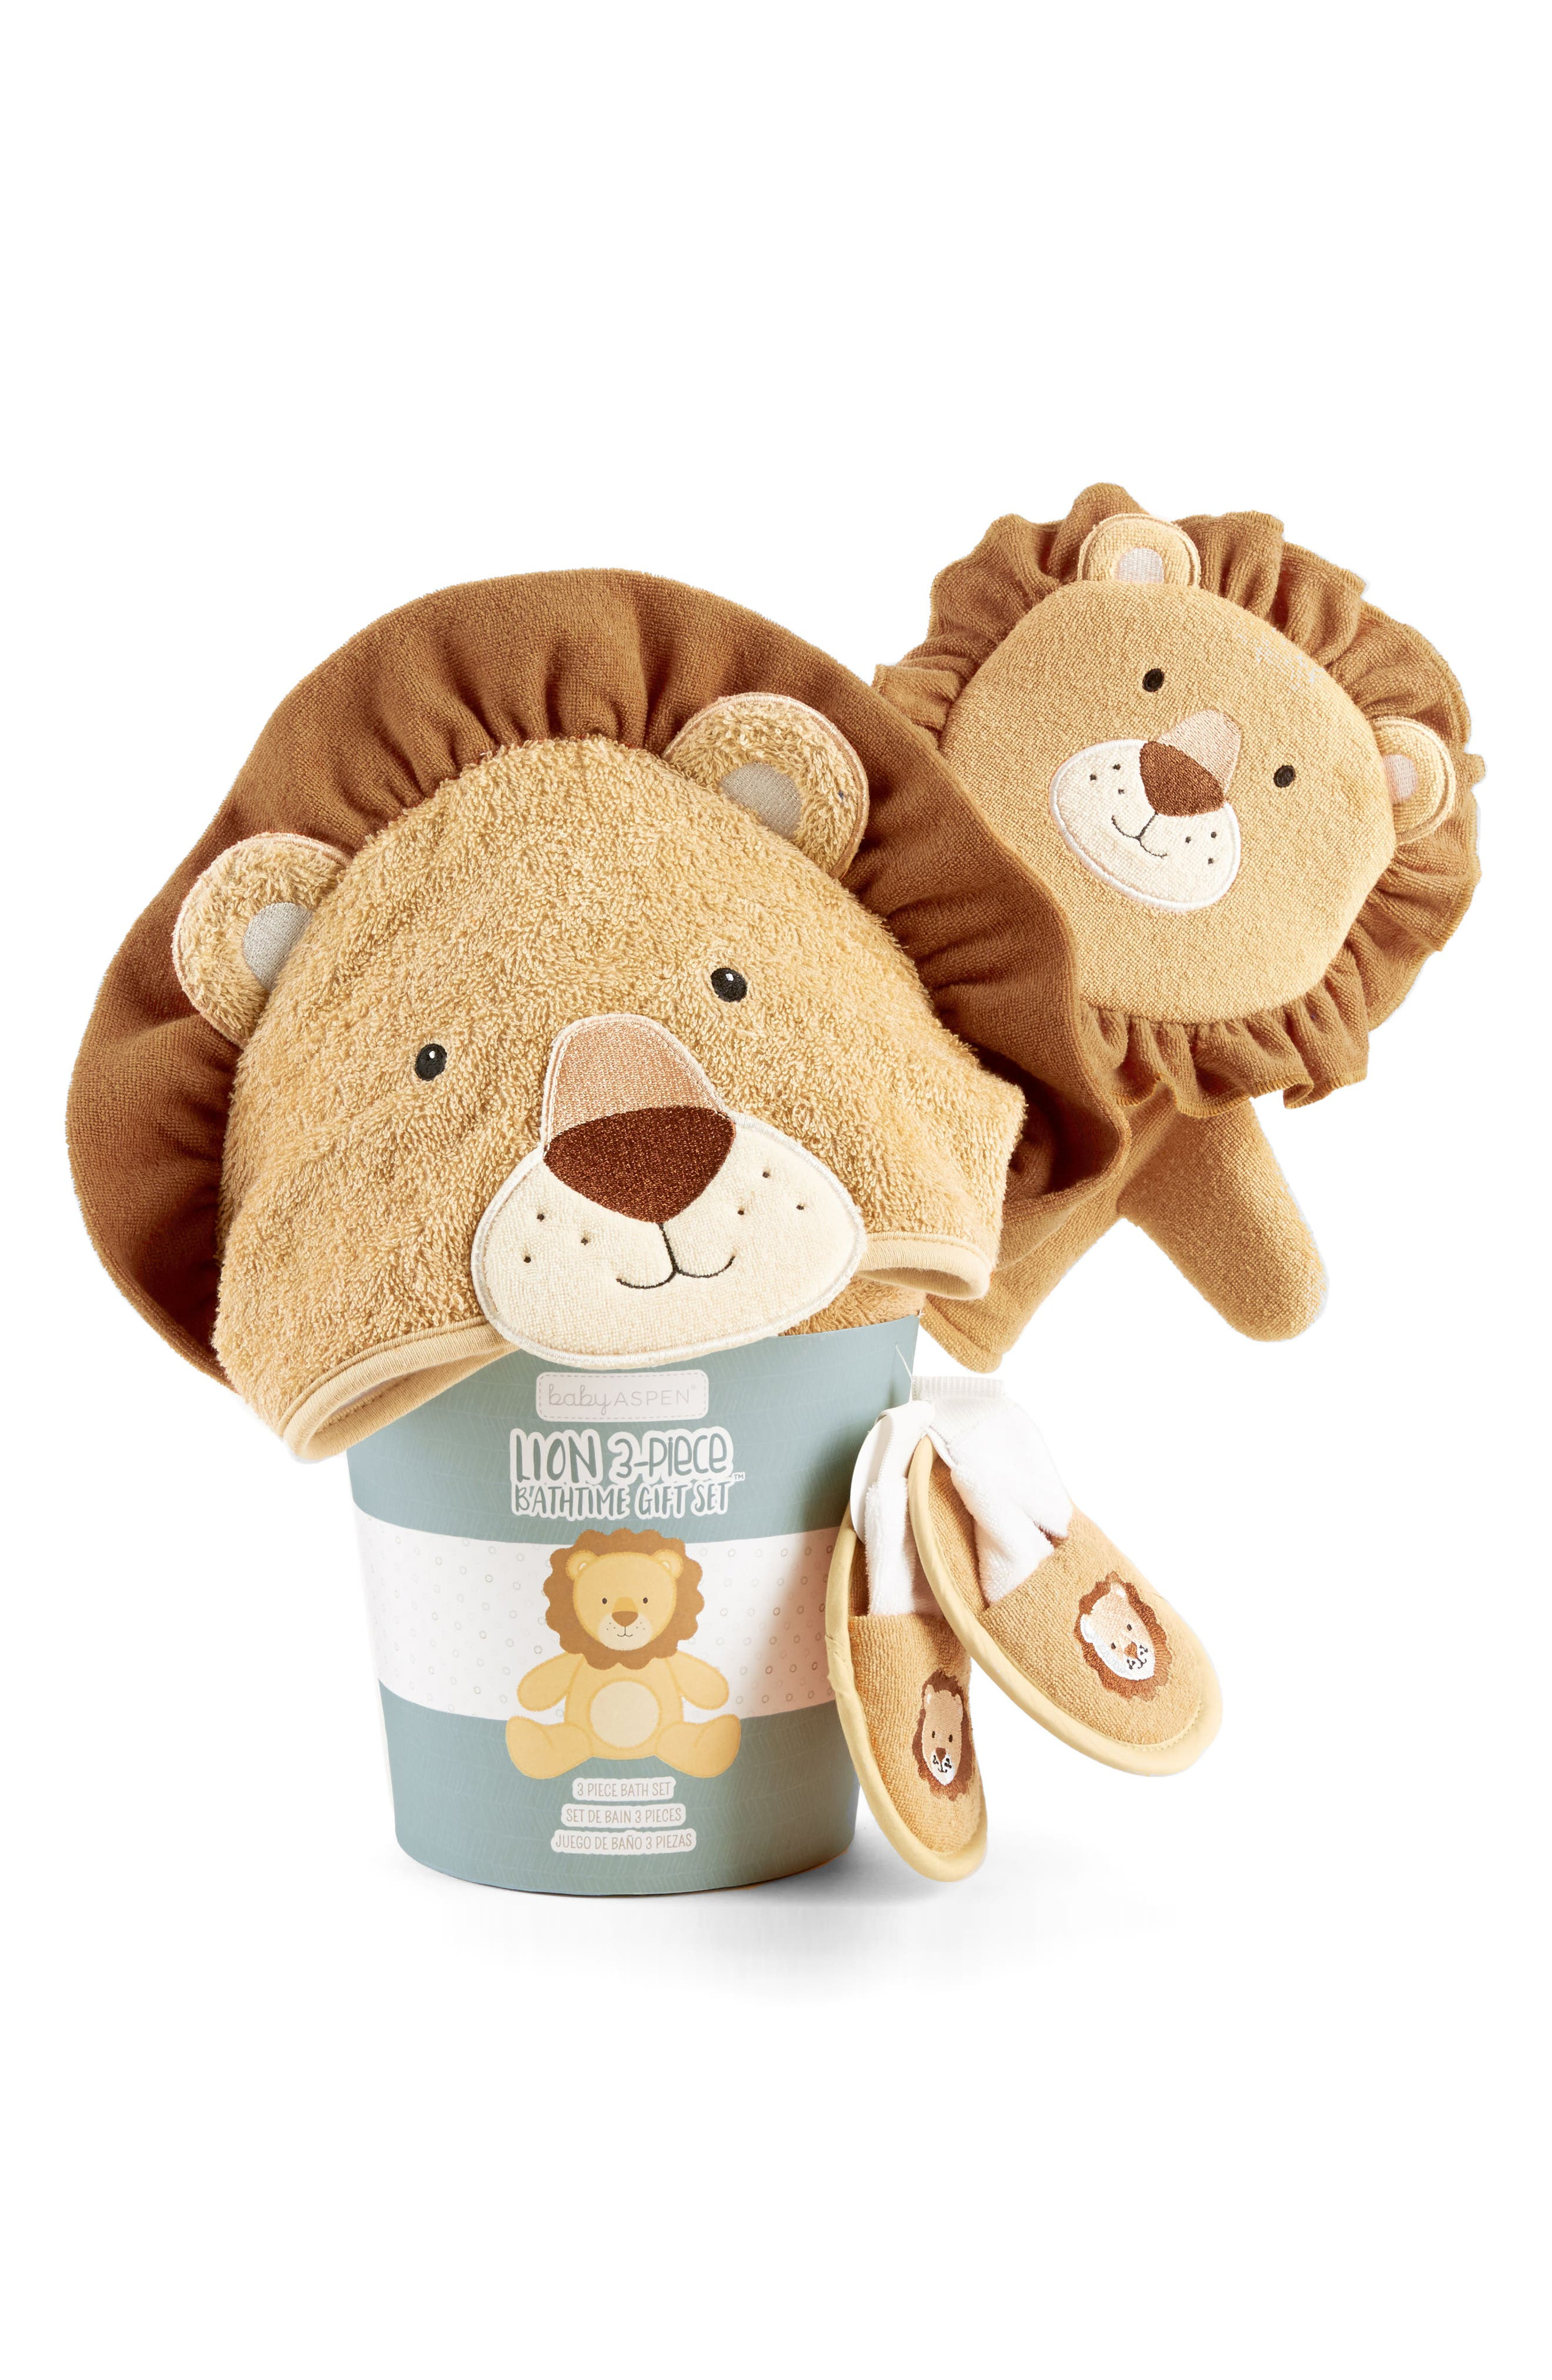 Lion Hooded Robe, Bath Mitt & Slippers Set,                             Main thumbnail 1, color,                             TAN, BROWN AND BEIGE